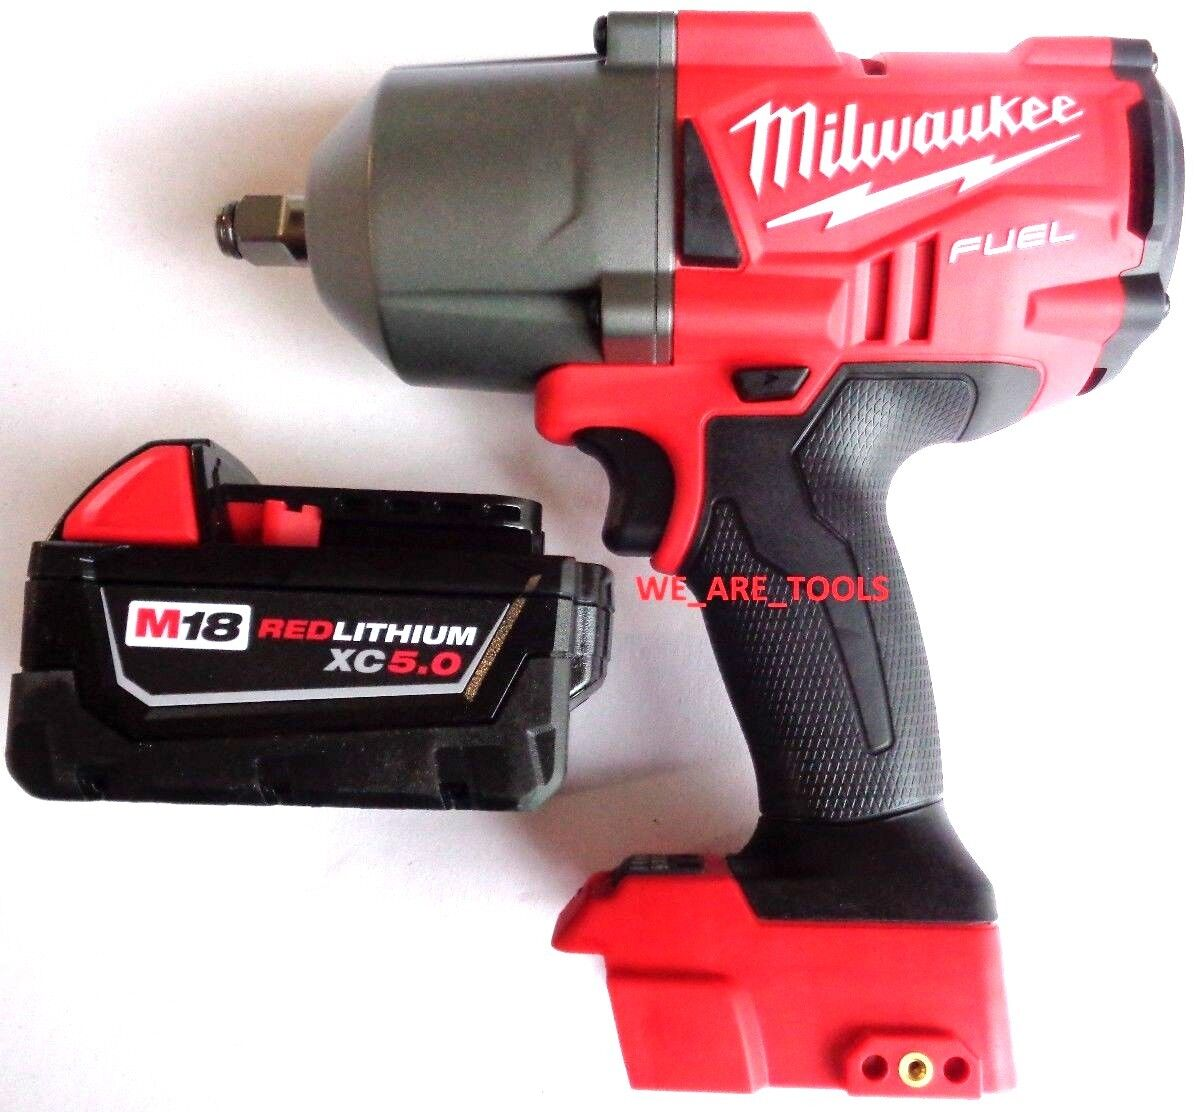 Milwaukee FUEL 2767-20 18V 1/2 Impact Wrench,(1) 48-11-1850 Battery, Charger M18 12